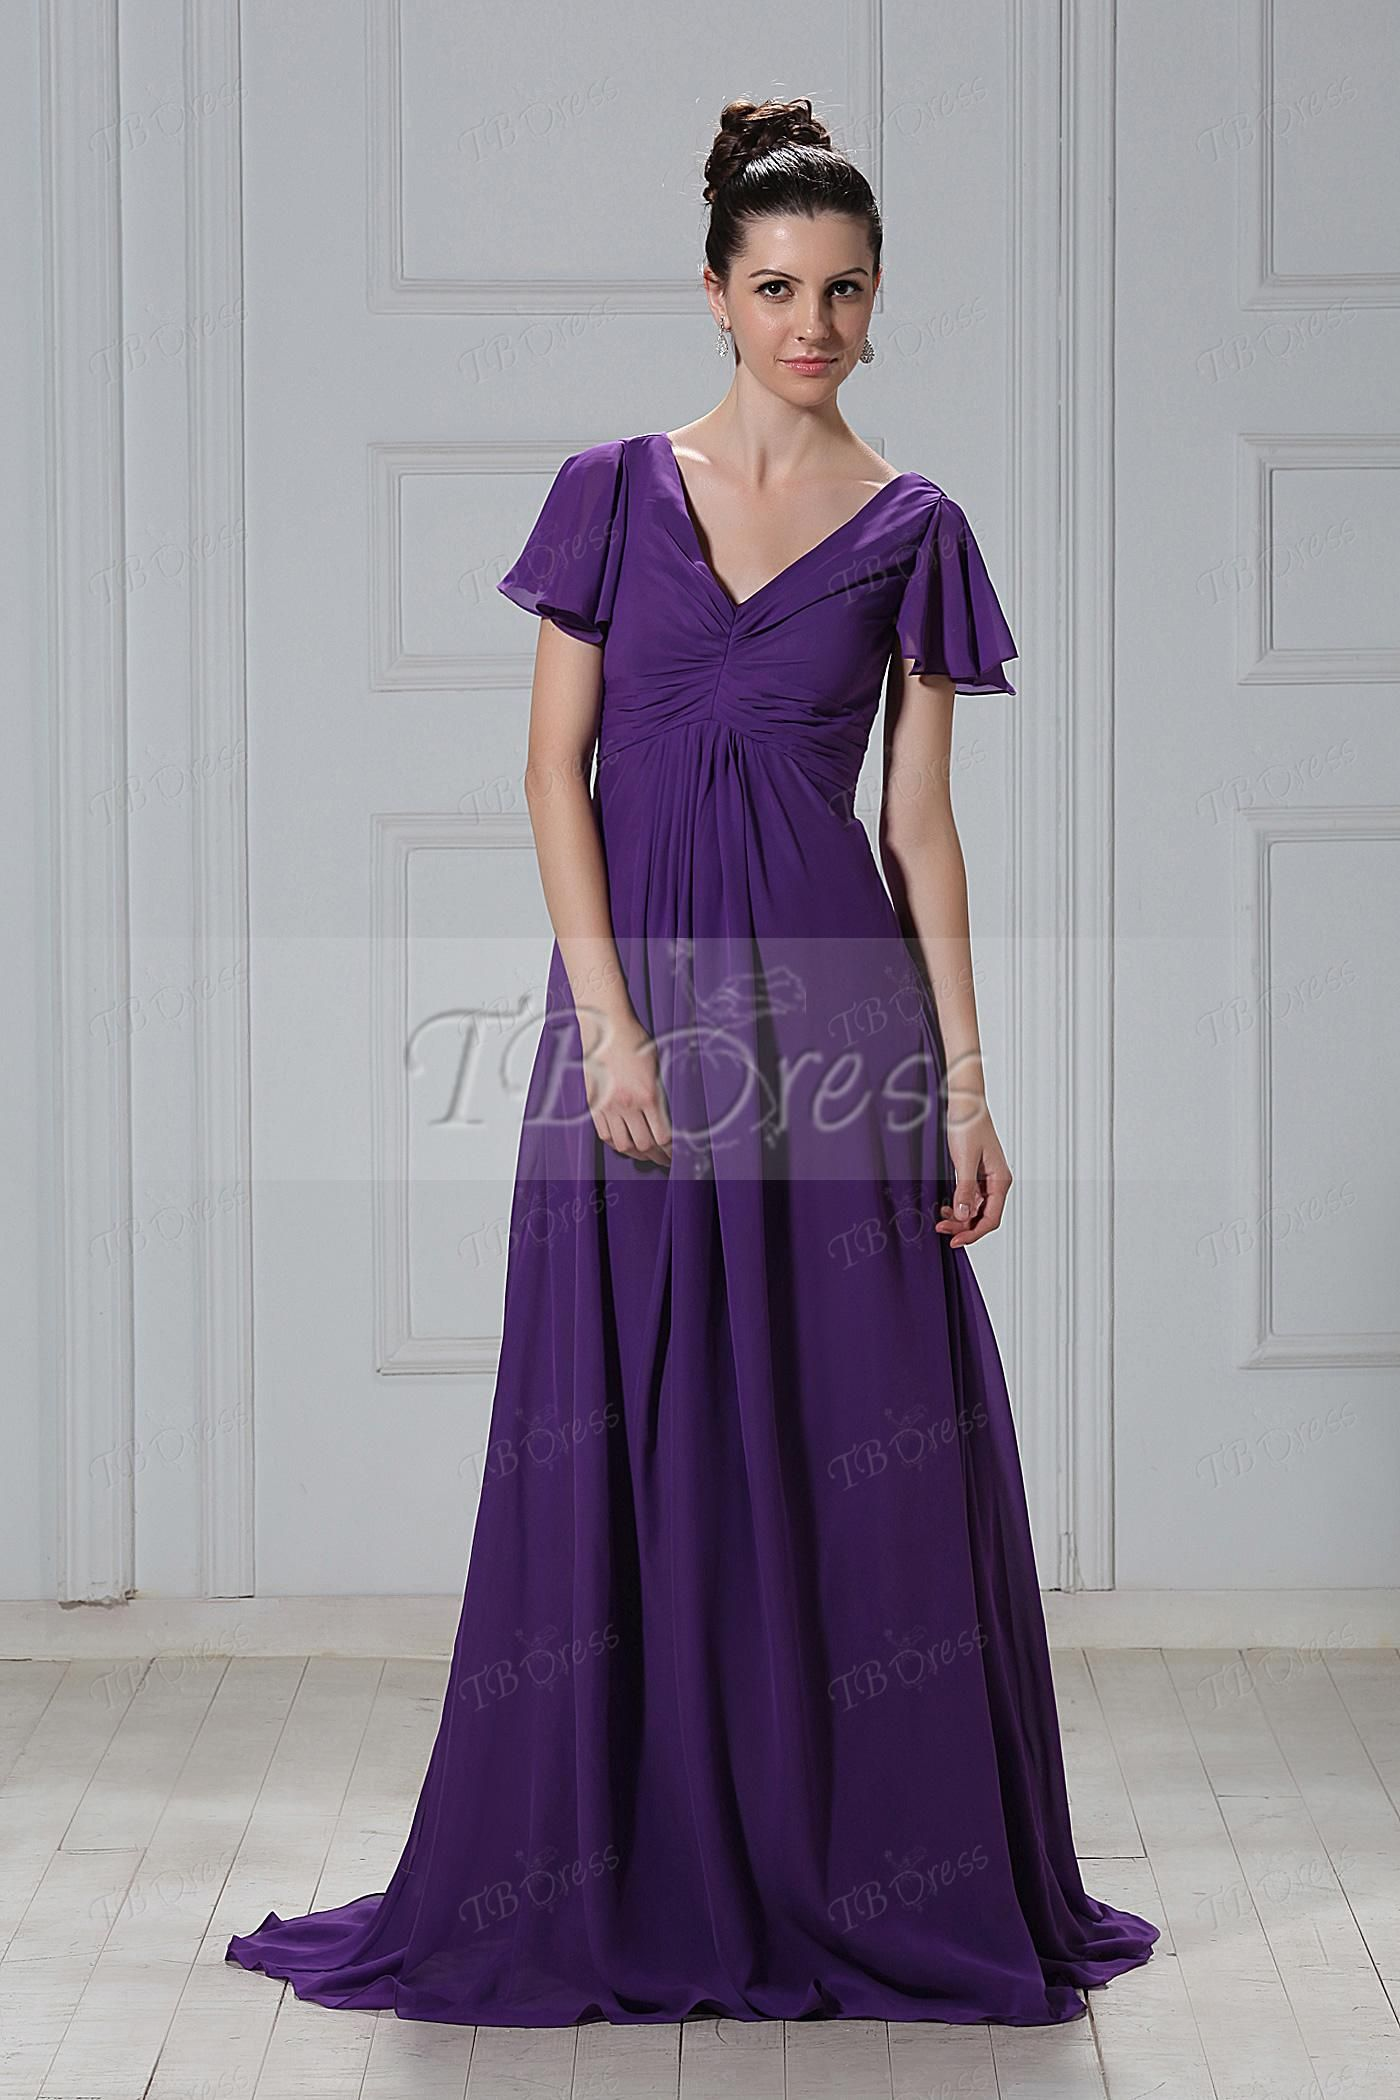 Ruched A-Line Strapless Empire Waist Floor-Length Bridesmaid Dress ...